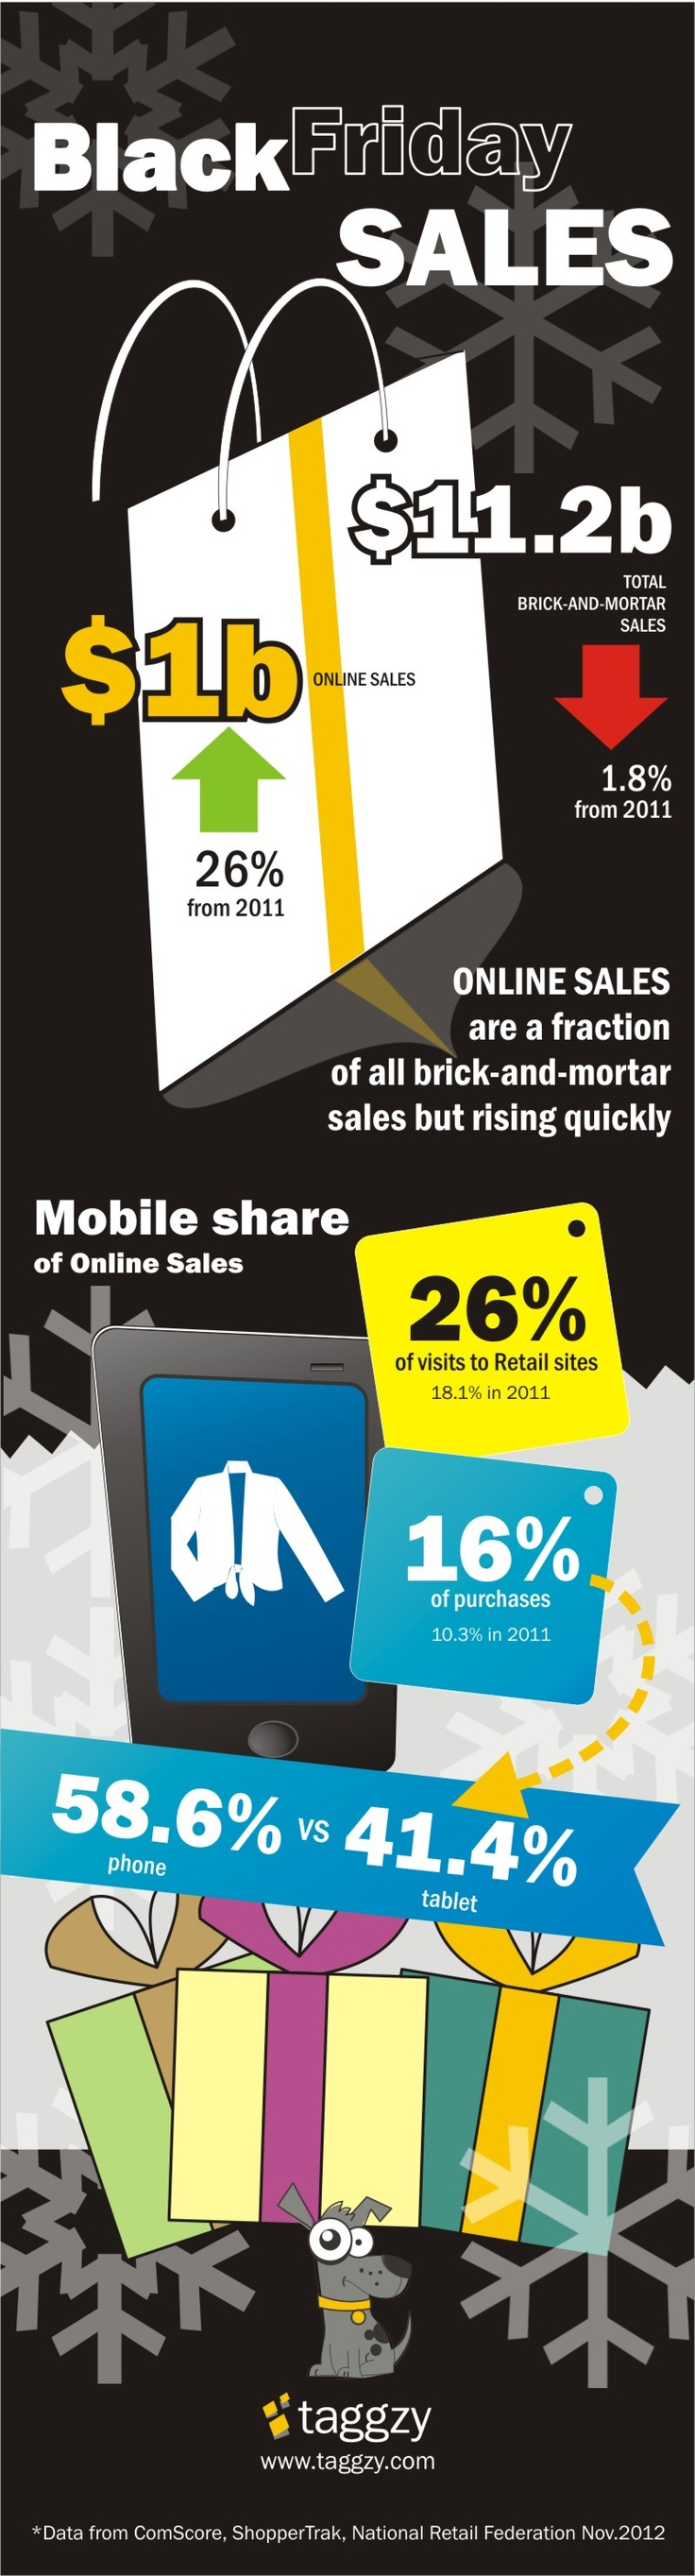 BlackFriday: $ 1billion worth of sales, mobile played it's significant role: 26% of visits to retail online stores are accounted to mobile devices (18,1% in 2011), while 16% of purchases where conducted over the mobile (10.3% in 2011).